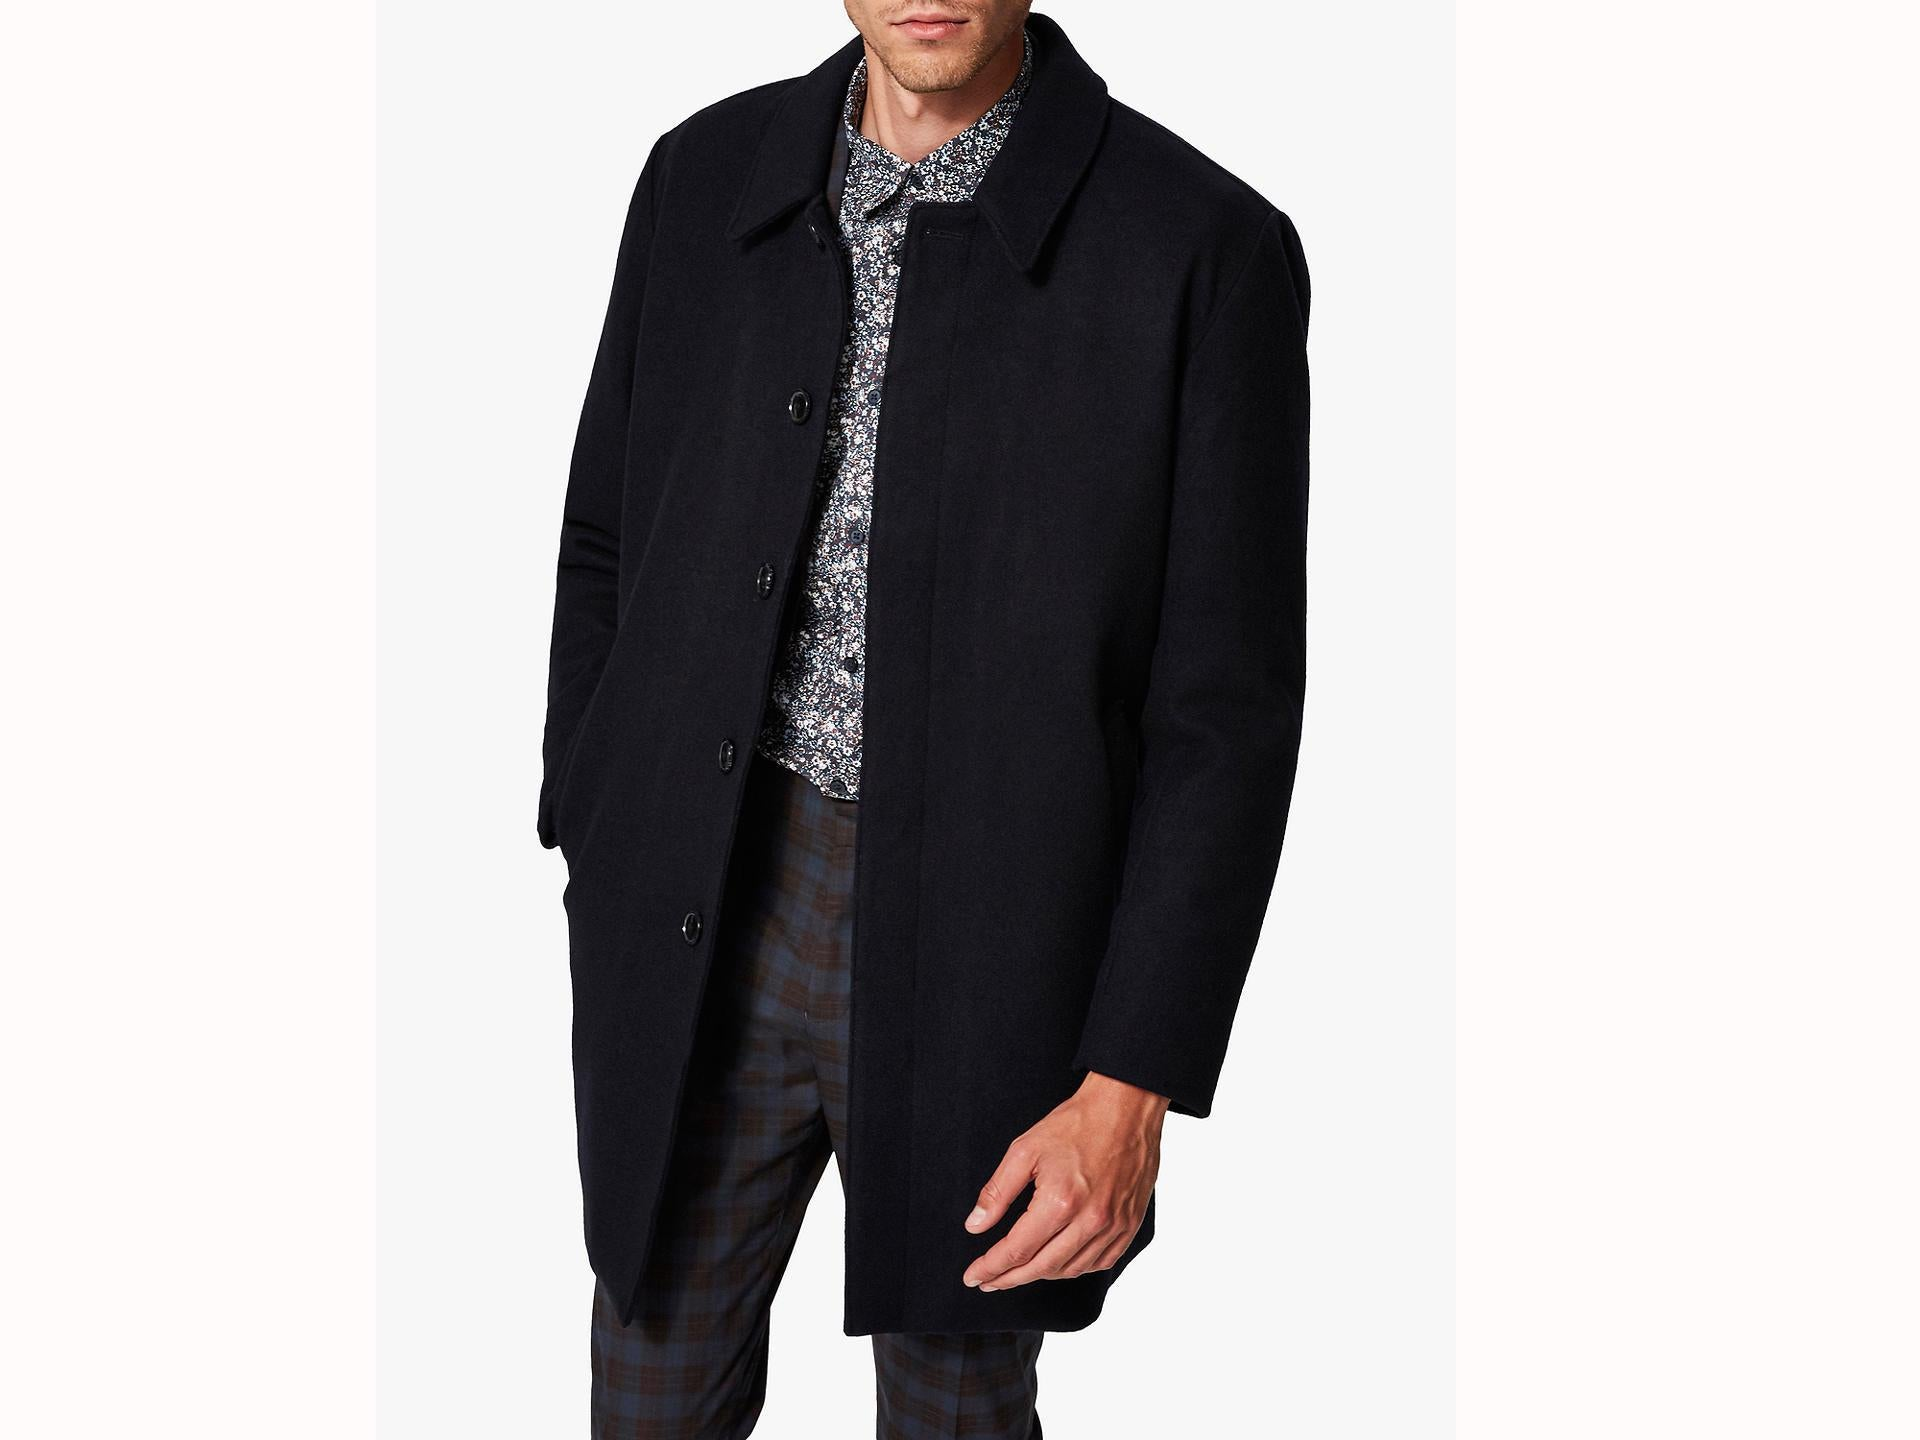 ROBO Winter Warm Quilted Trench Coat Long Wool Blend Pea Coat Jacket for Mens